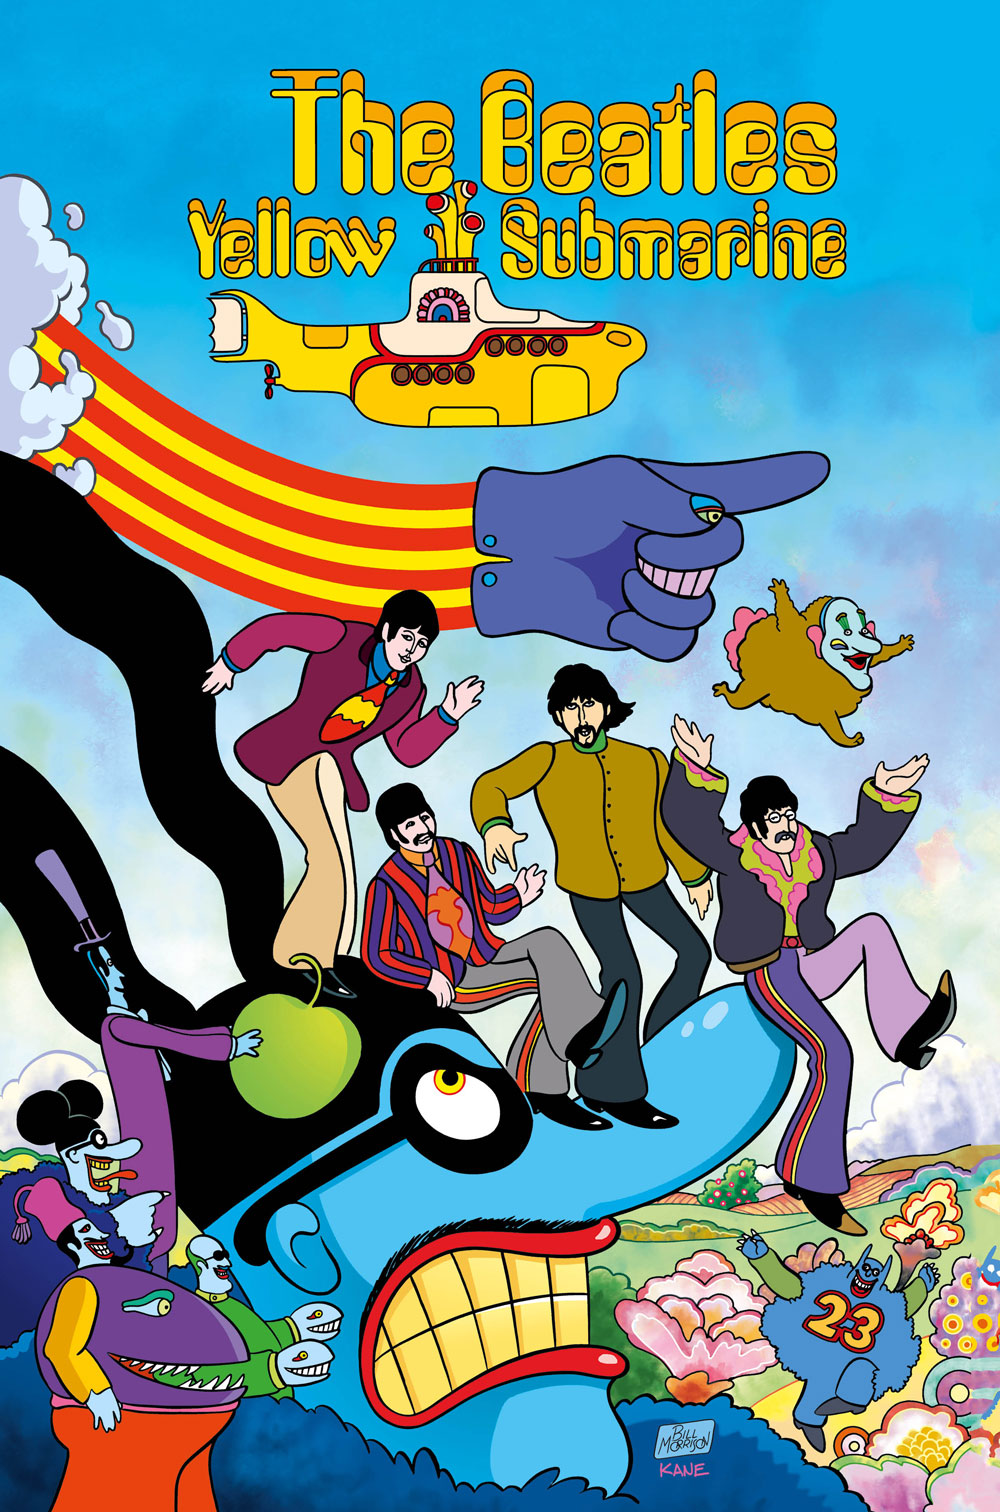 In honor of the film and album's 50th anniversary, take a ride in a lovingly refurbished yellow submarine.